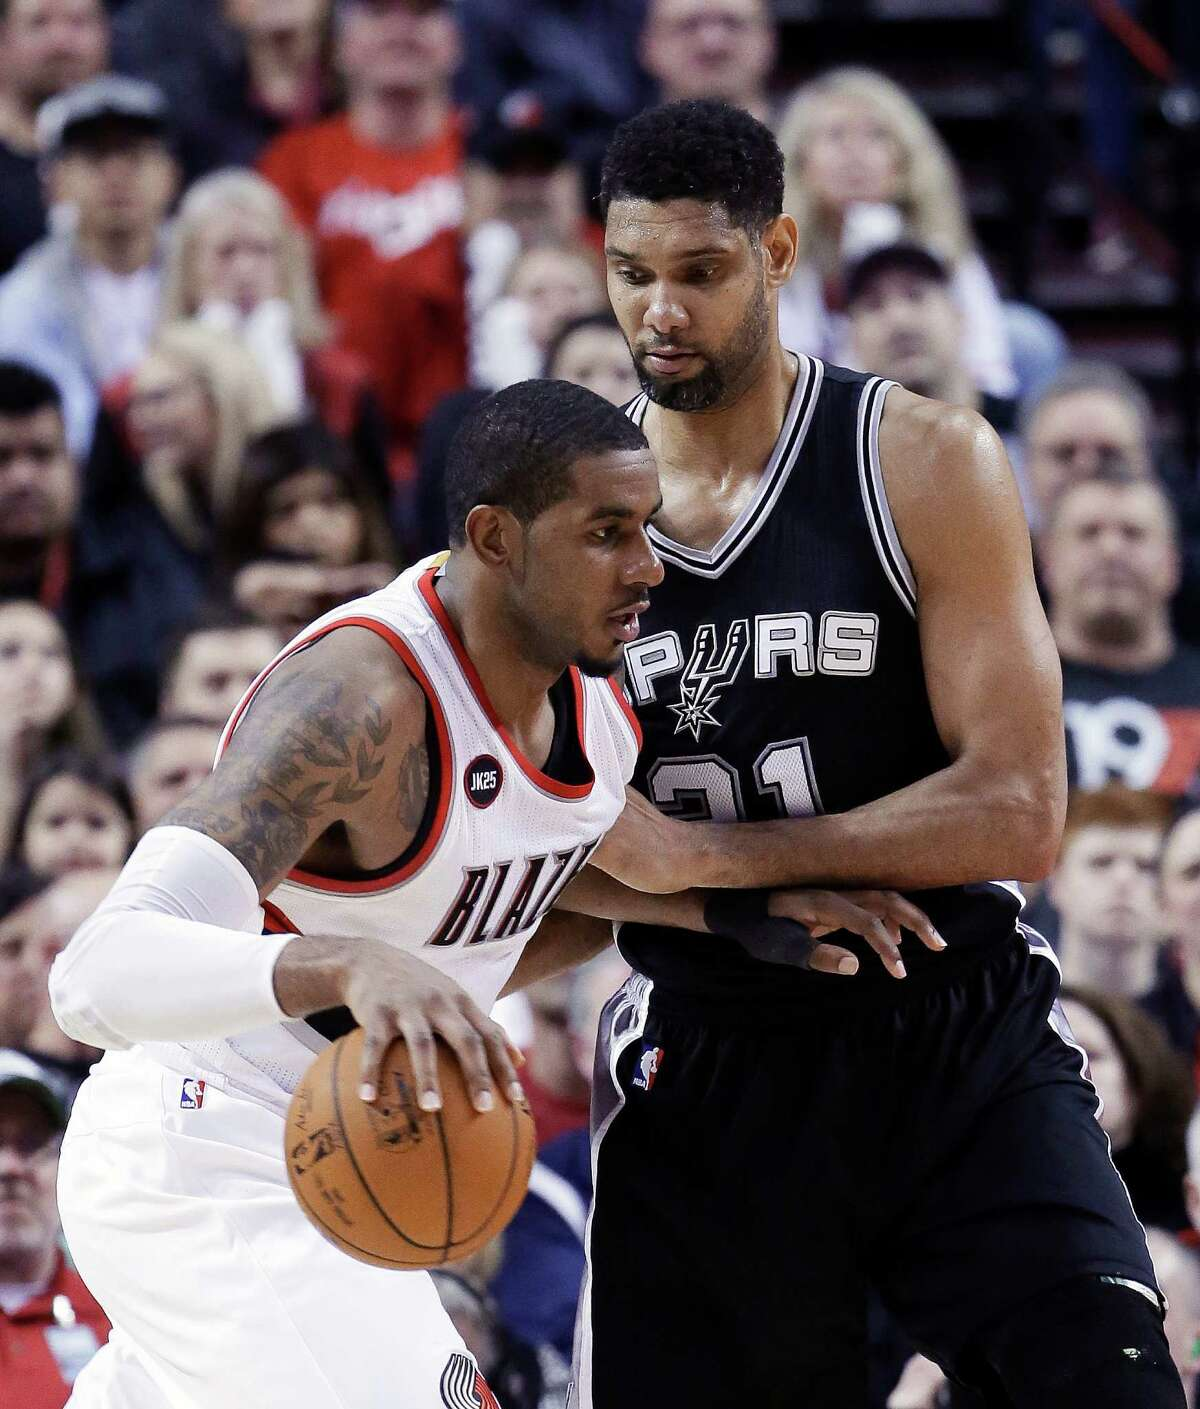 LaMarcus Aldridge: Signed with Spurs as a free agentAldridge, who is a Dallas native, decided to head back to his home state and join forces with Duncan and Pop, becoming the centerpiece in a newer, stronger Spurs lineup that is looking at another deep playoff run.